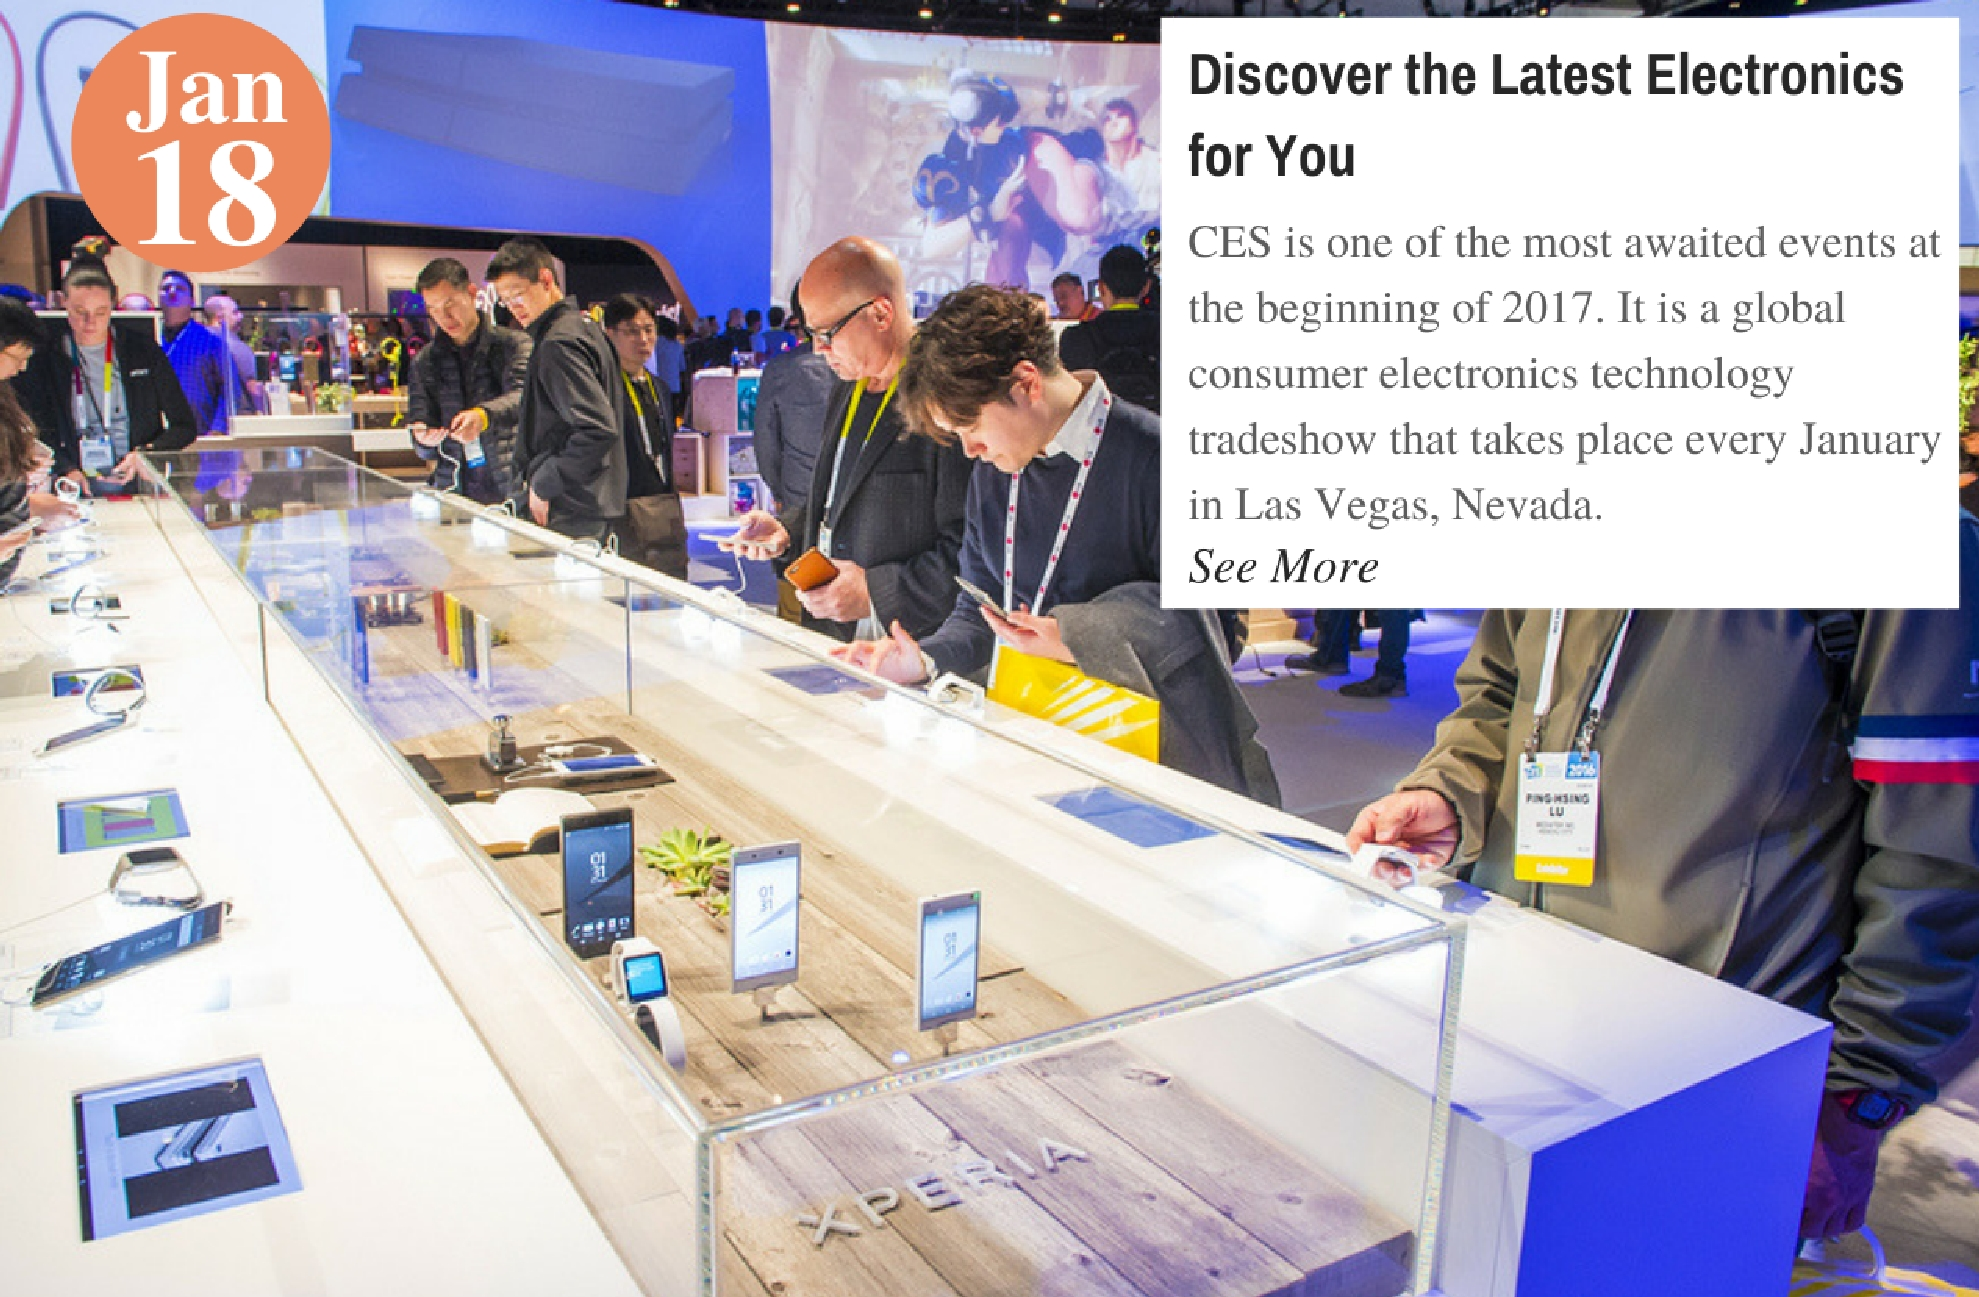 Discover the Latest Electronics for You